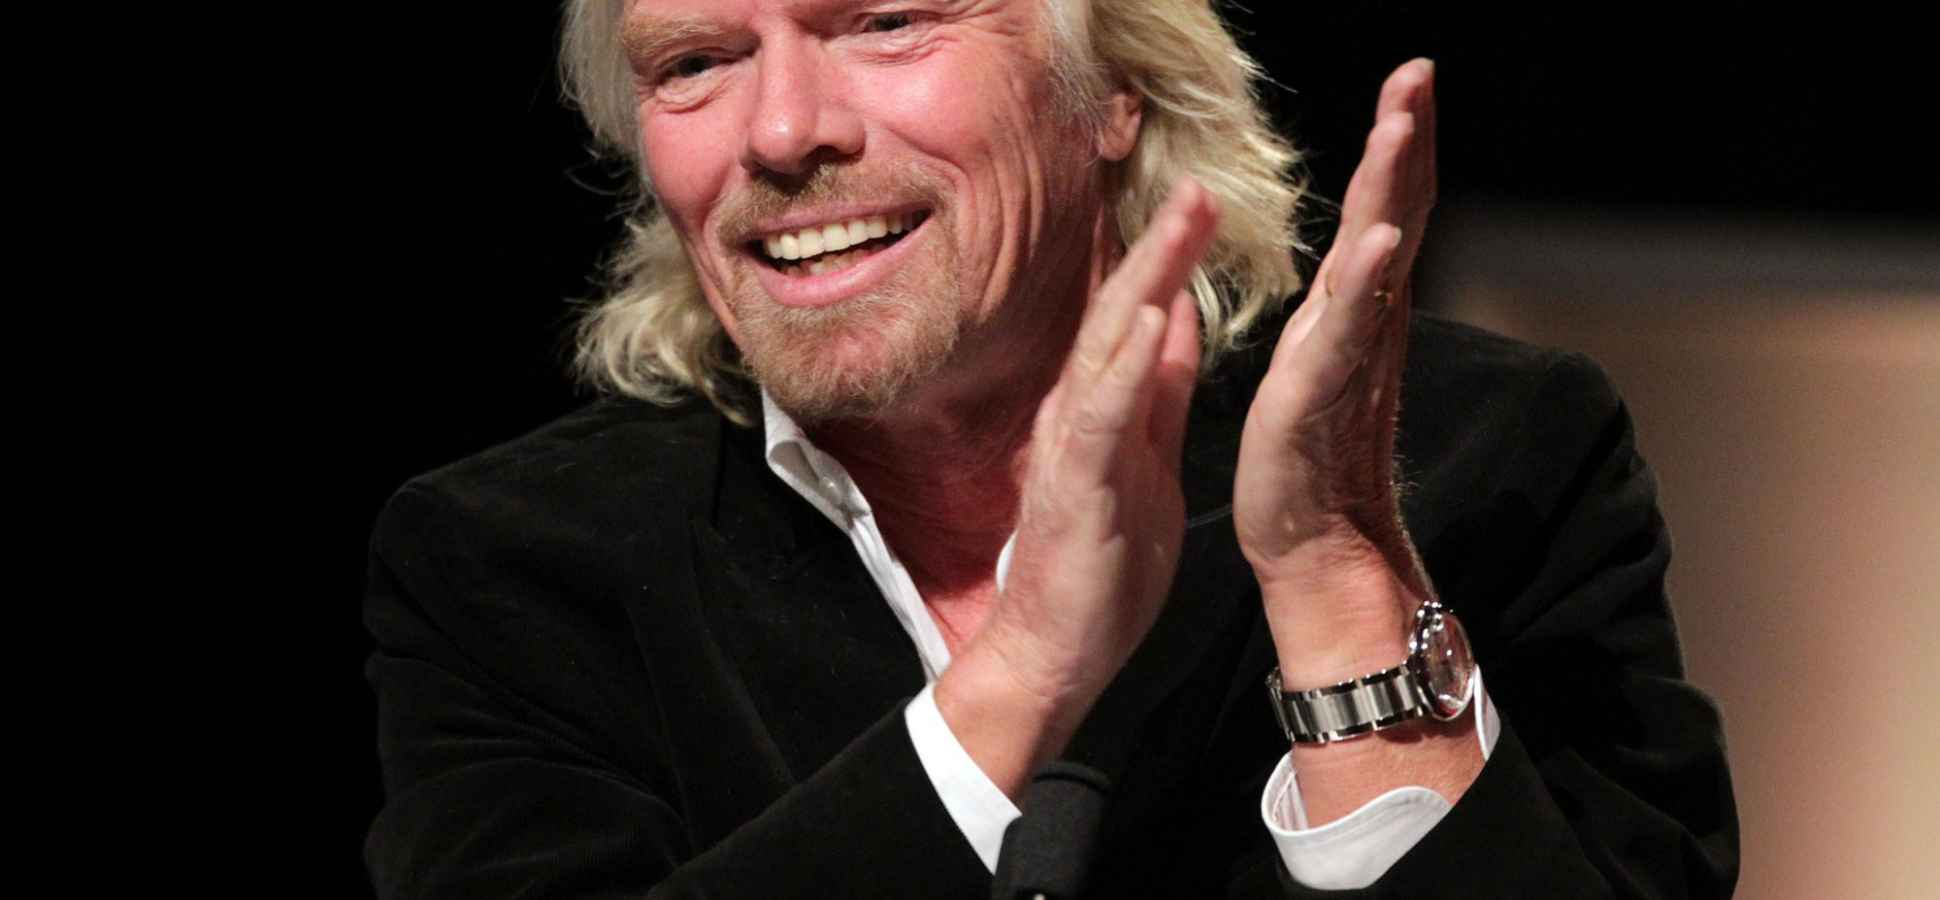 Richard Branson's Secret to Being More Productive, in Just 2 Words